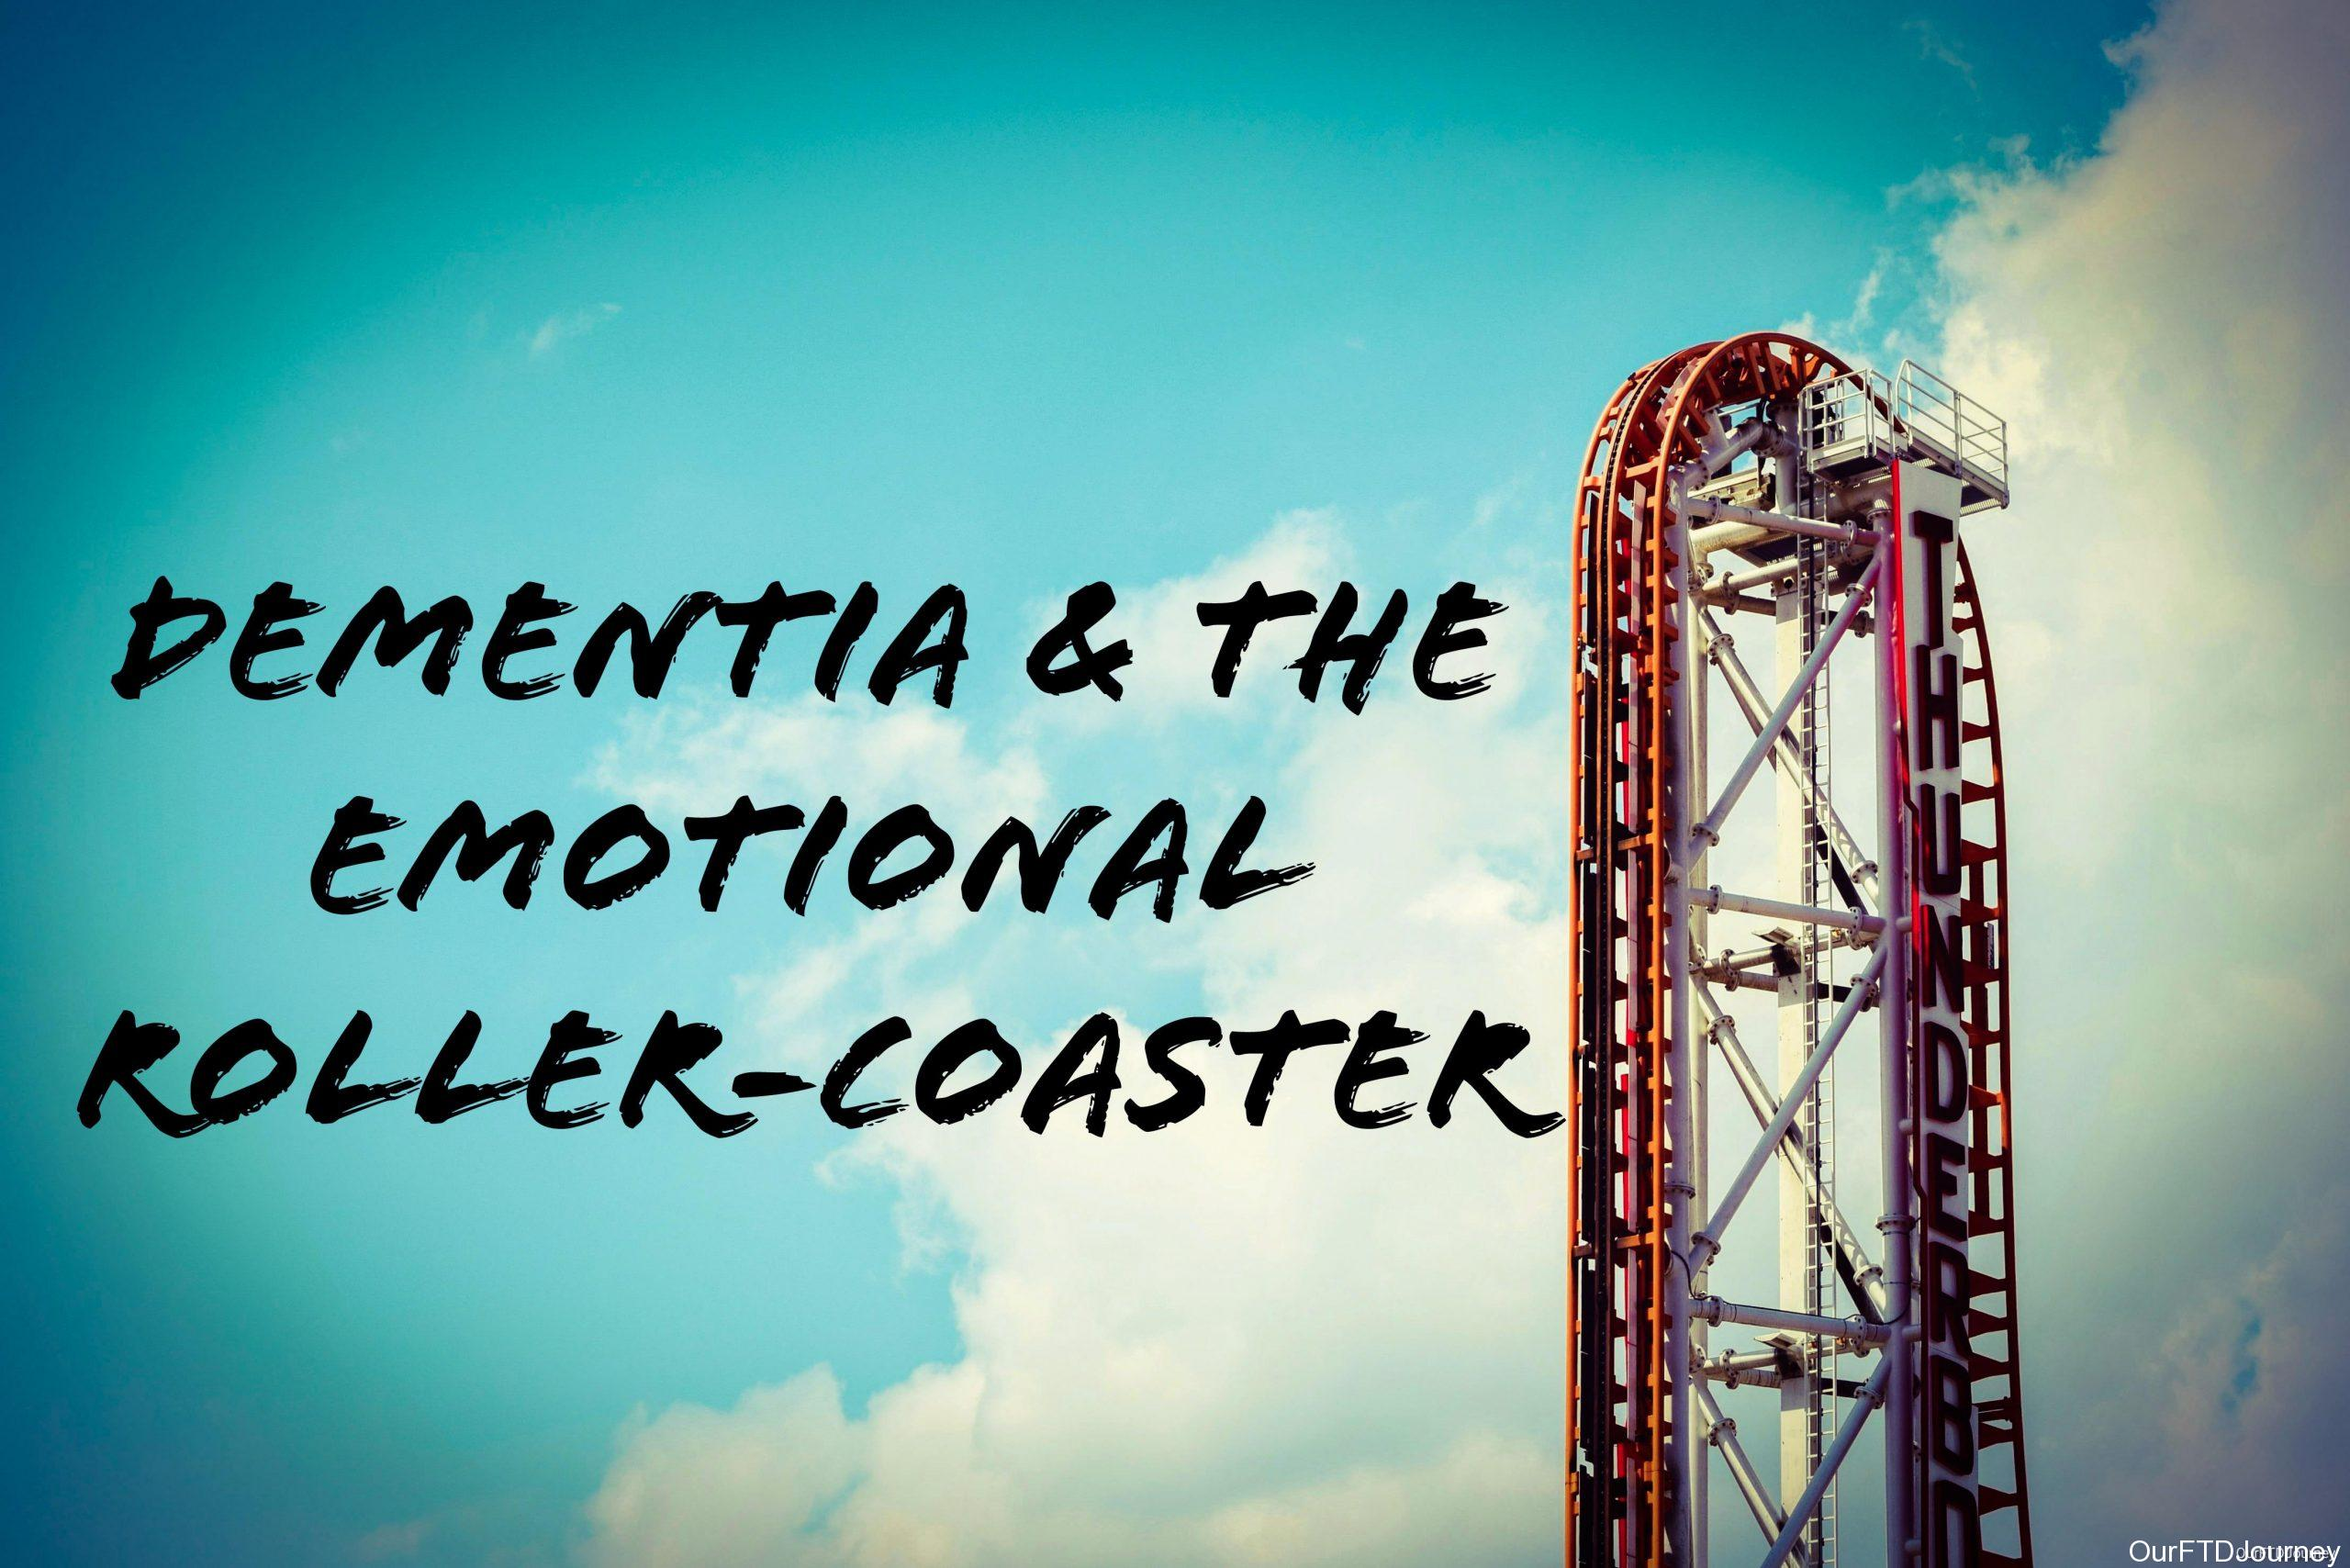 online dating and emptional roller coaster